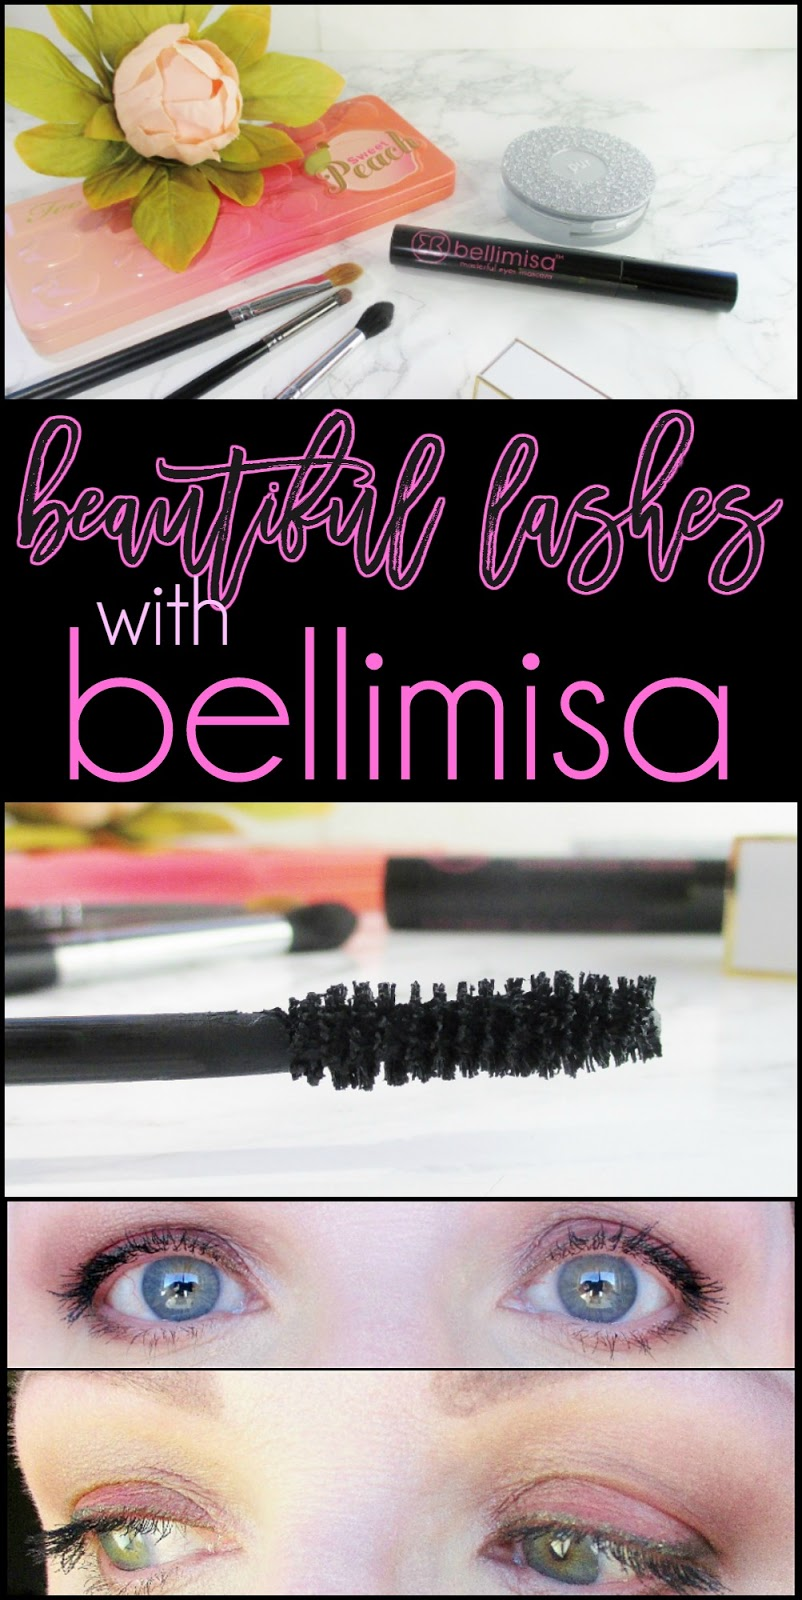 bellimisa-masterful-eyes-mascara-review-review-and-eye-look